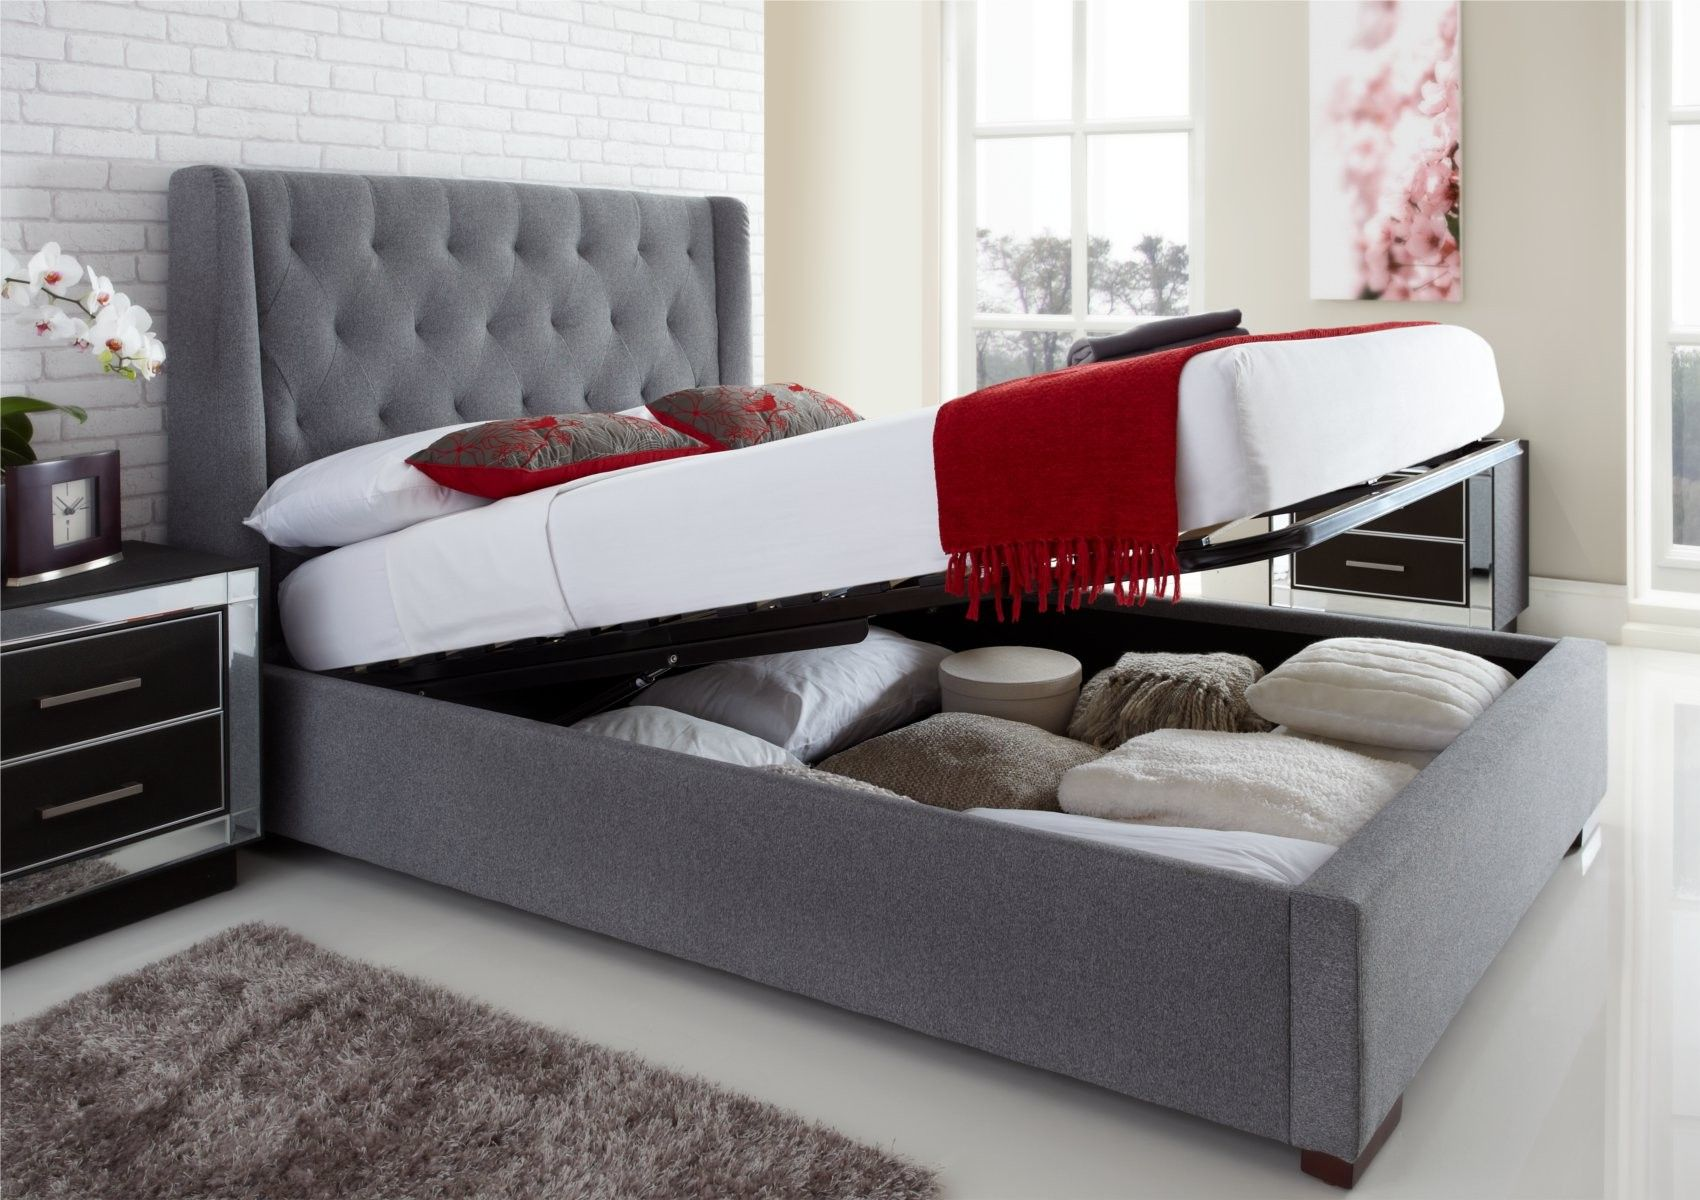 Google Images Of Upholstered King Size Headboards With Wings Richmond Winged Ottoman Storage Bed